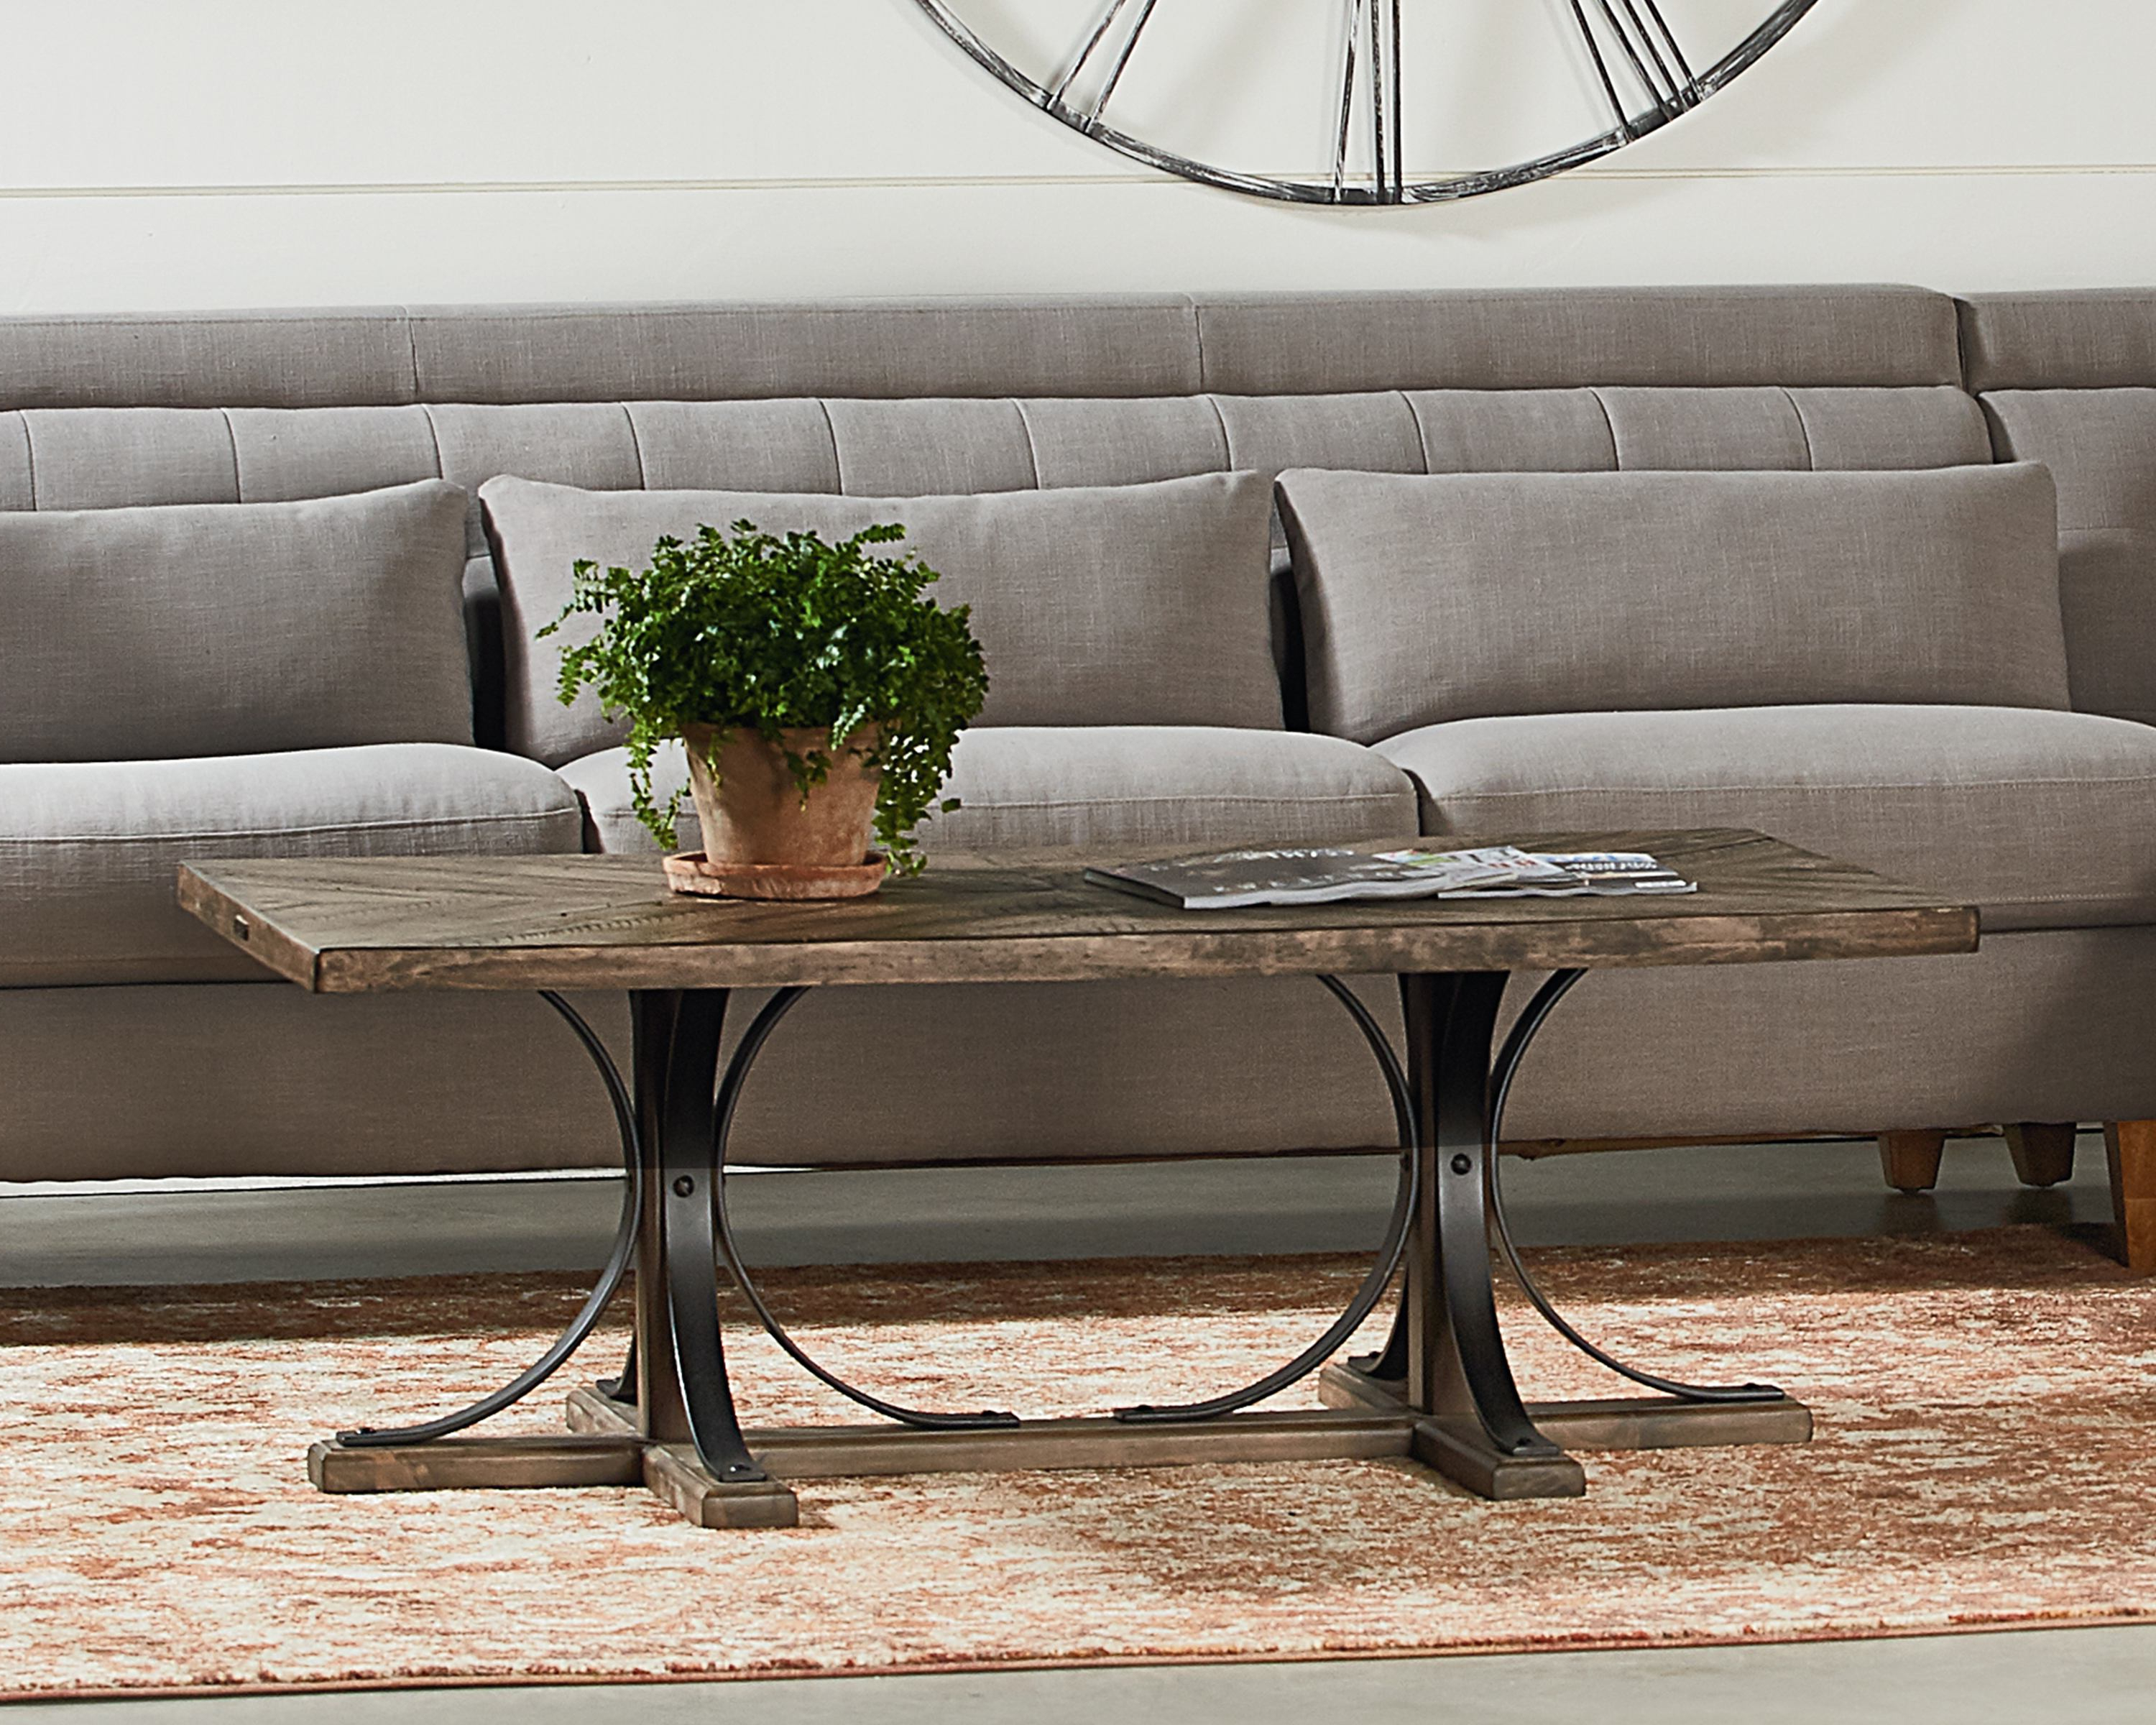 Best And Newest Iron Trestle Coffee Table – Magnolia Home With Regard To Magnolia Home Iron Trestle Cocktail Tables (Gallery 2 of 20)